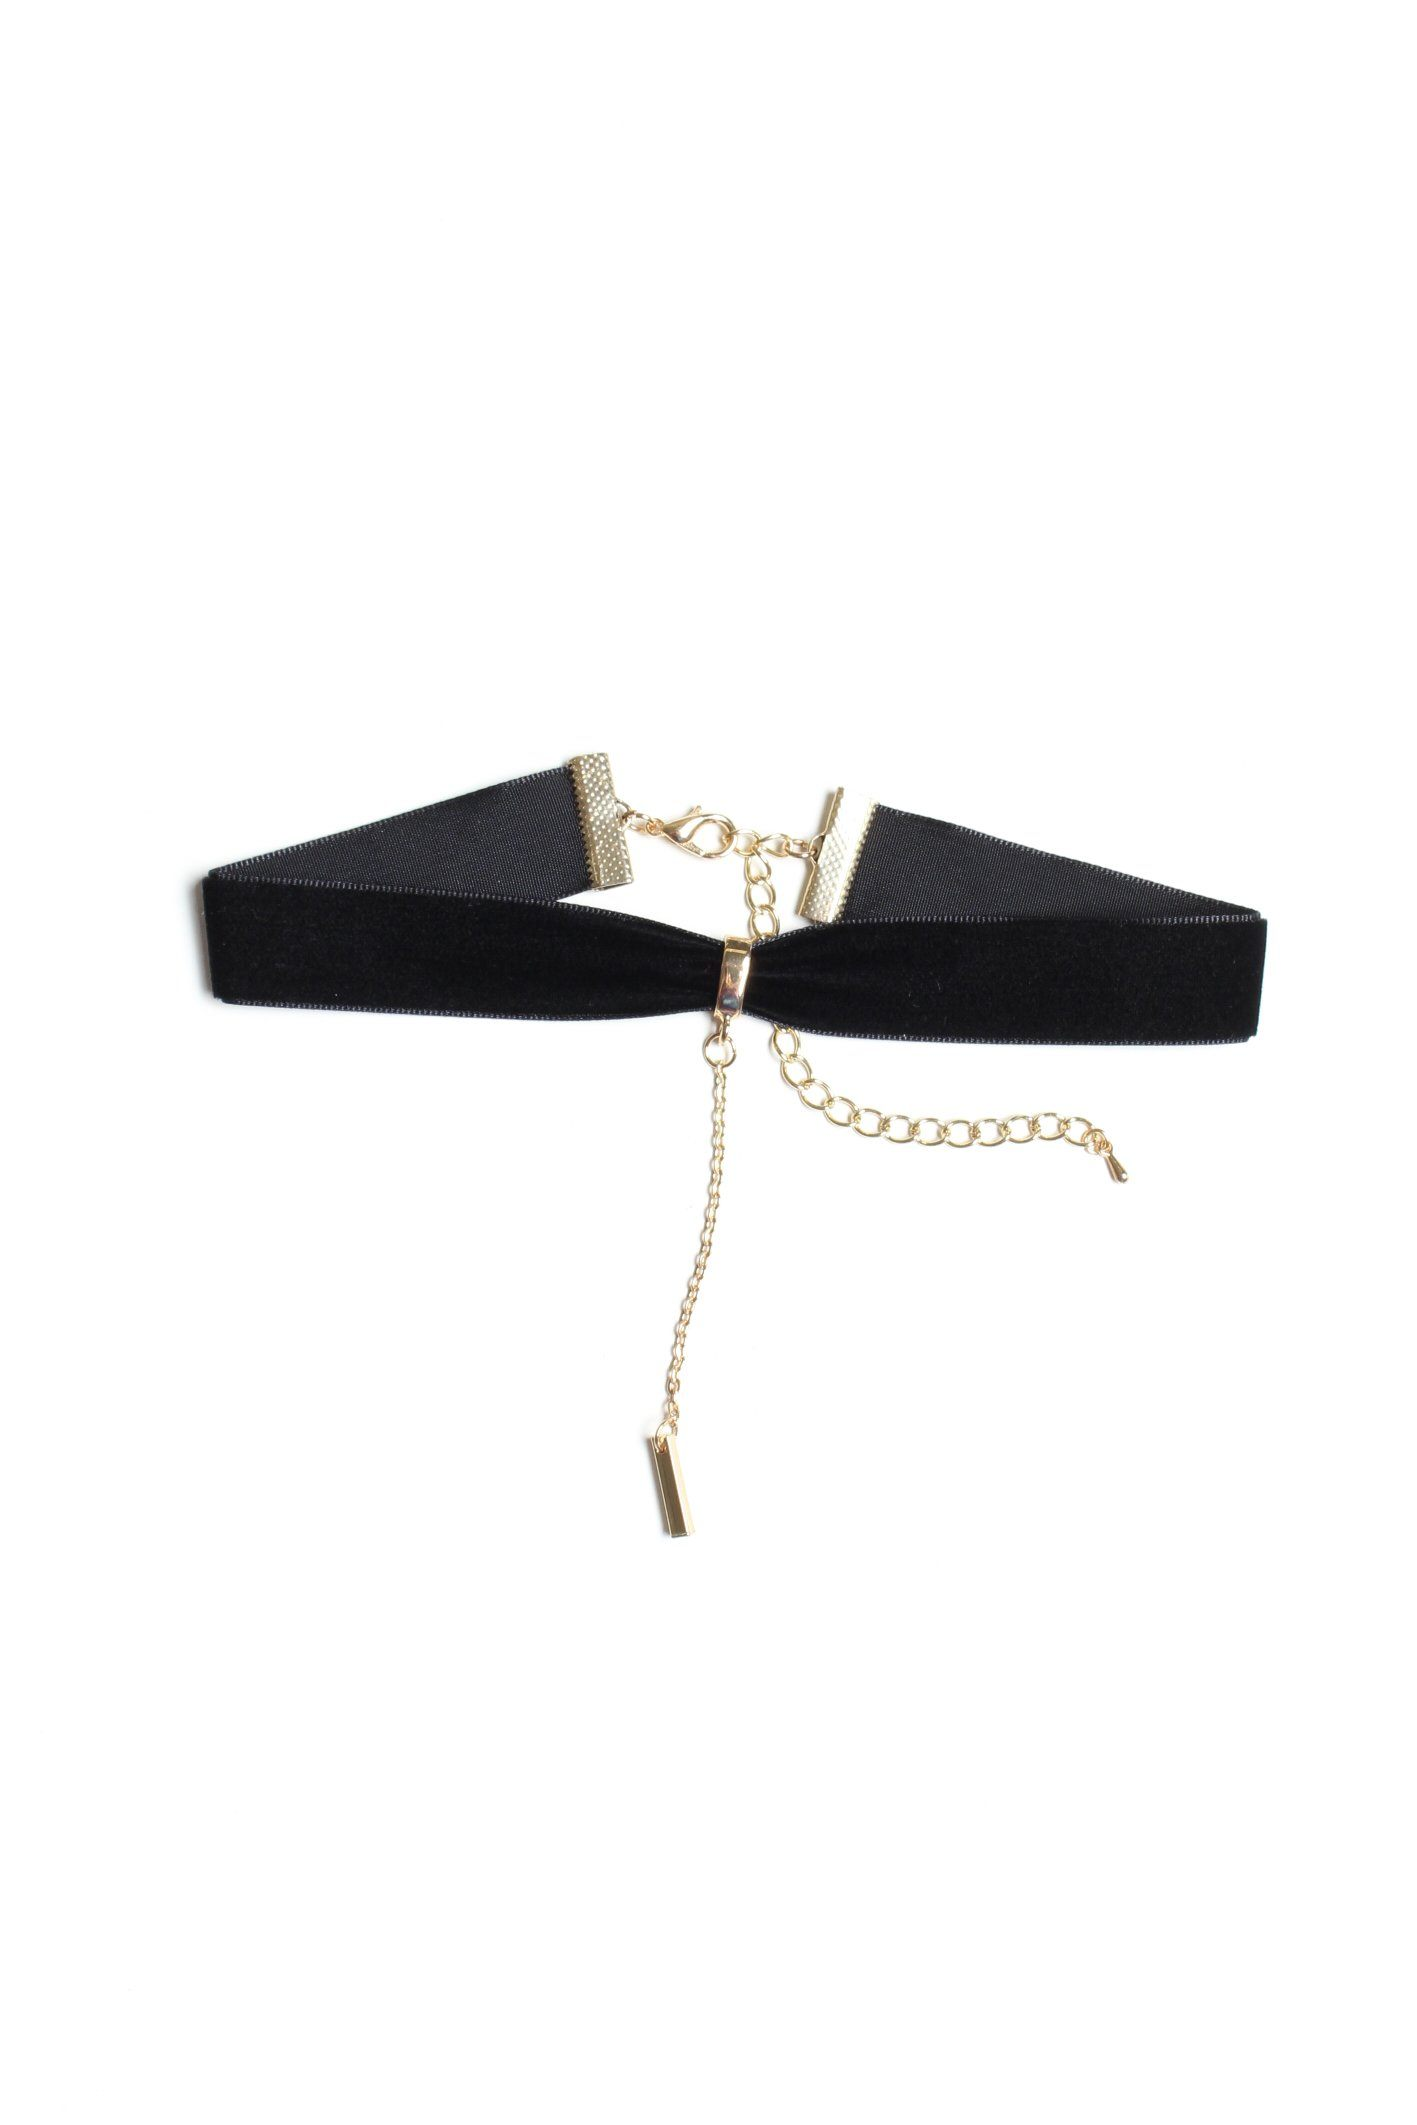 Hold The Bar Velvet Choker - Black